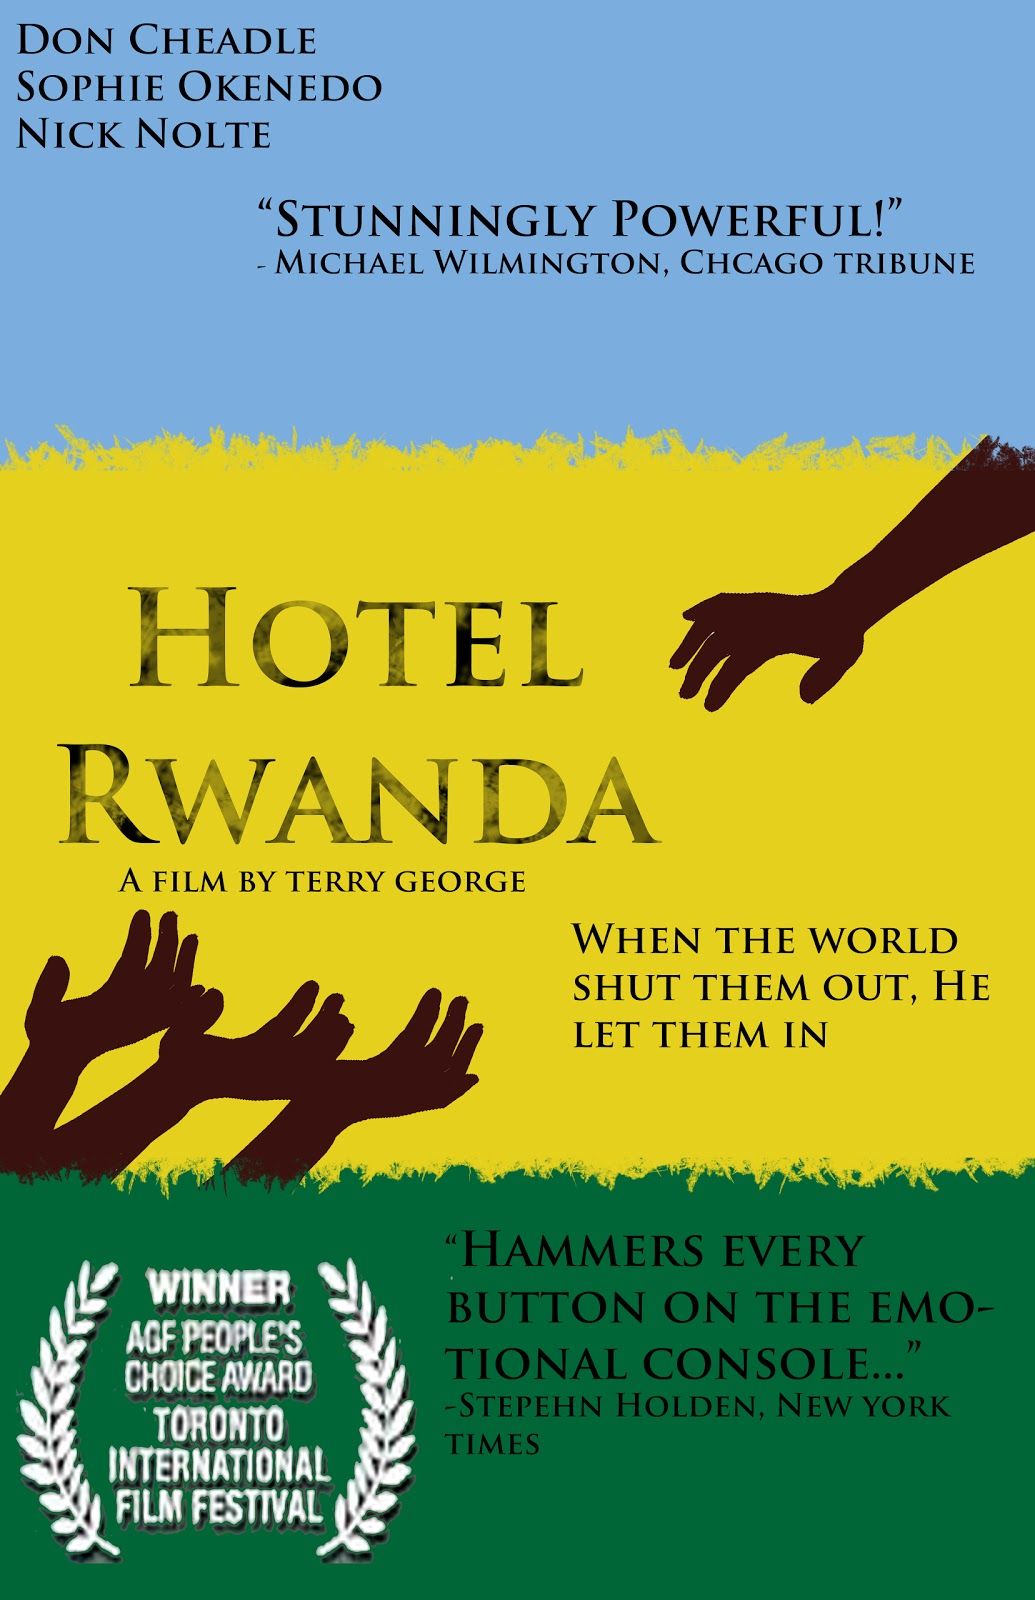 hotel rwanda review essay hotel rwanda movie review essay elwakt  hotel rwanda movie review essay will write your essaysfor money galleryhip com hotel rwanda